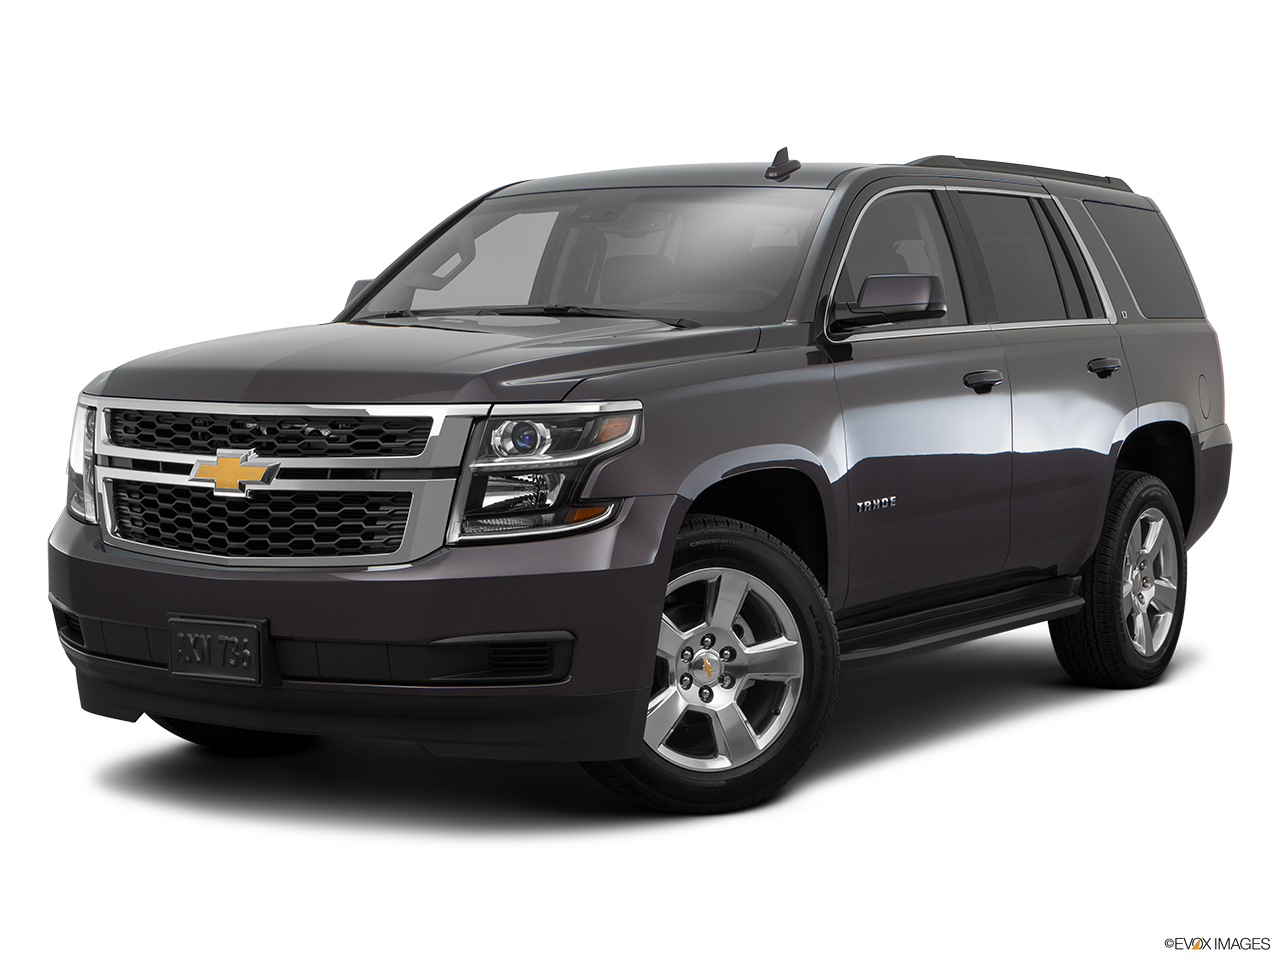 test drive a 2016 chevrolet tahoe at champion chevrolet in reno. Cars Review. Best American Auto & Cars Review